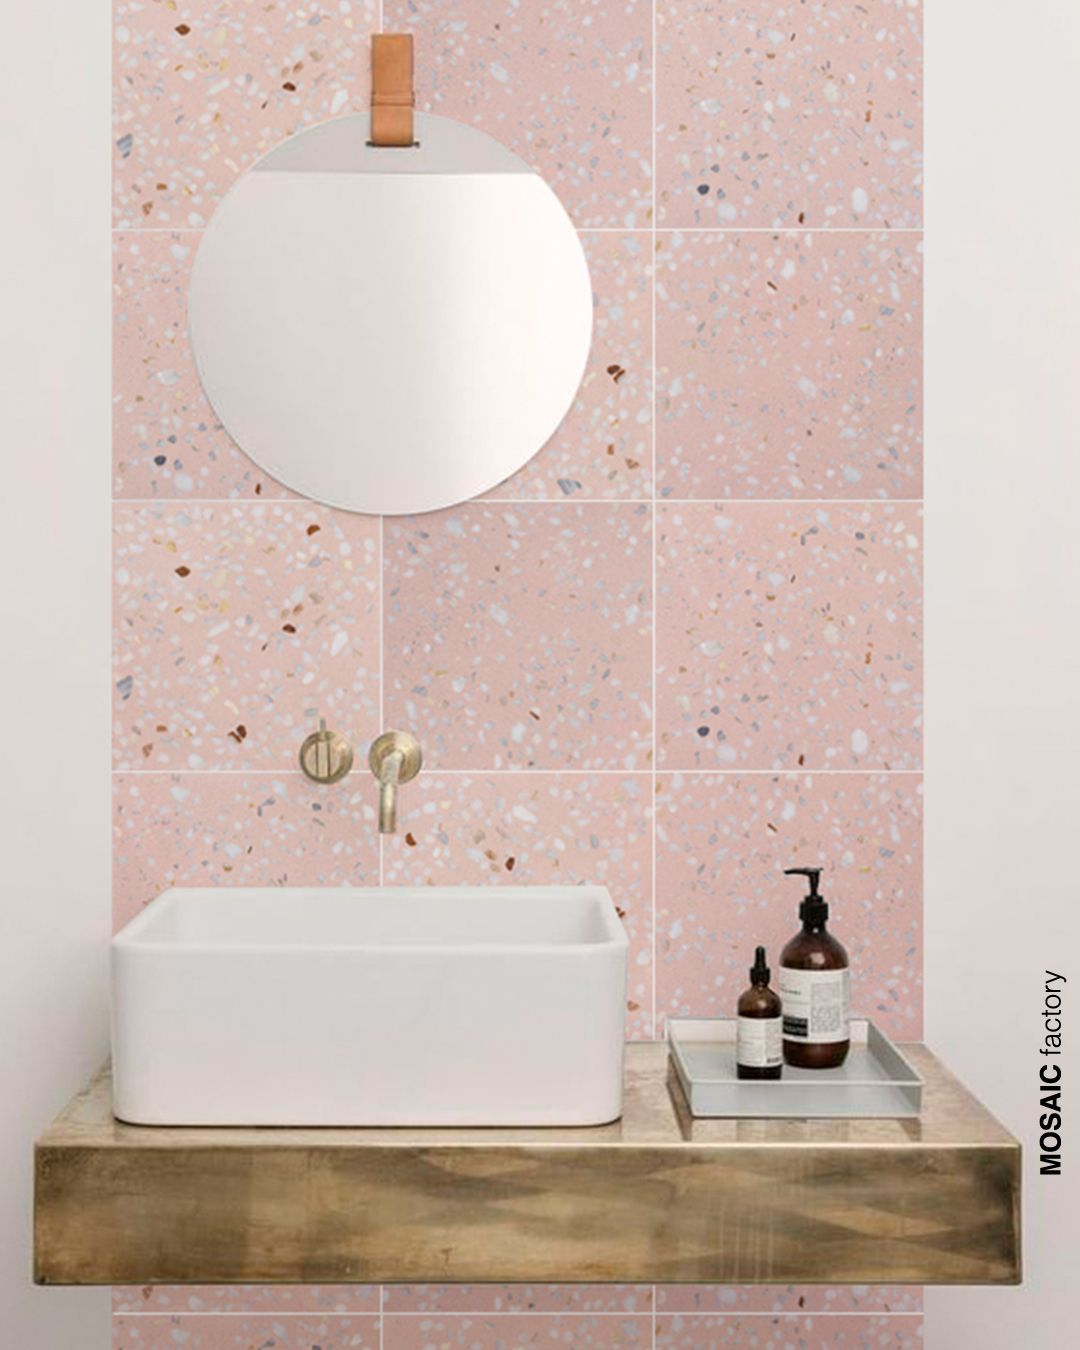 Terrazzo Waschbecken Discover The Infinite Possibilities Of The New And Trendy Terrazzo